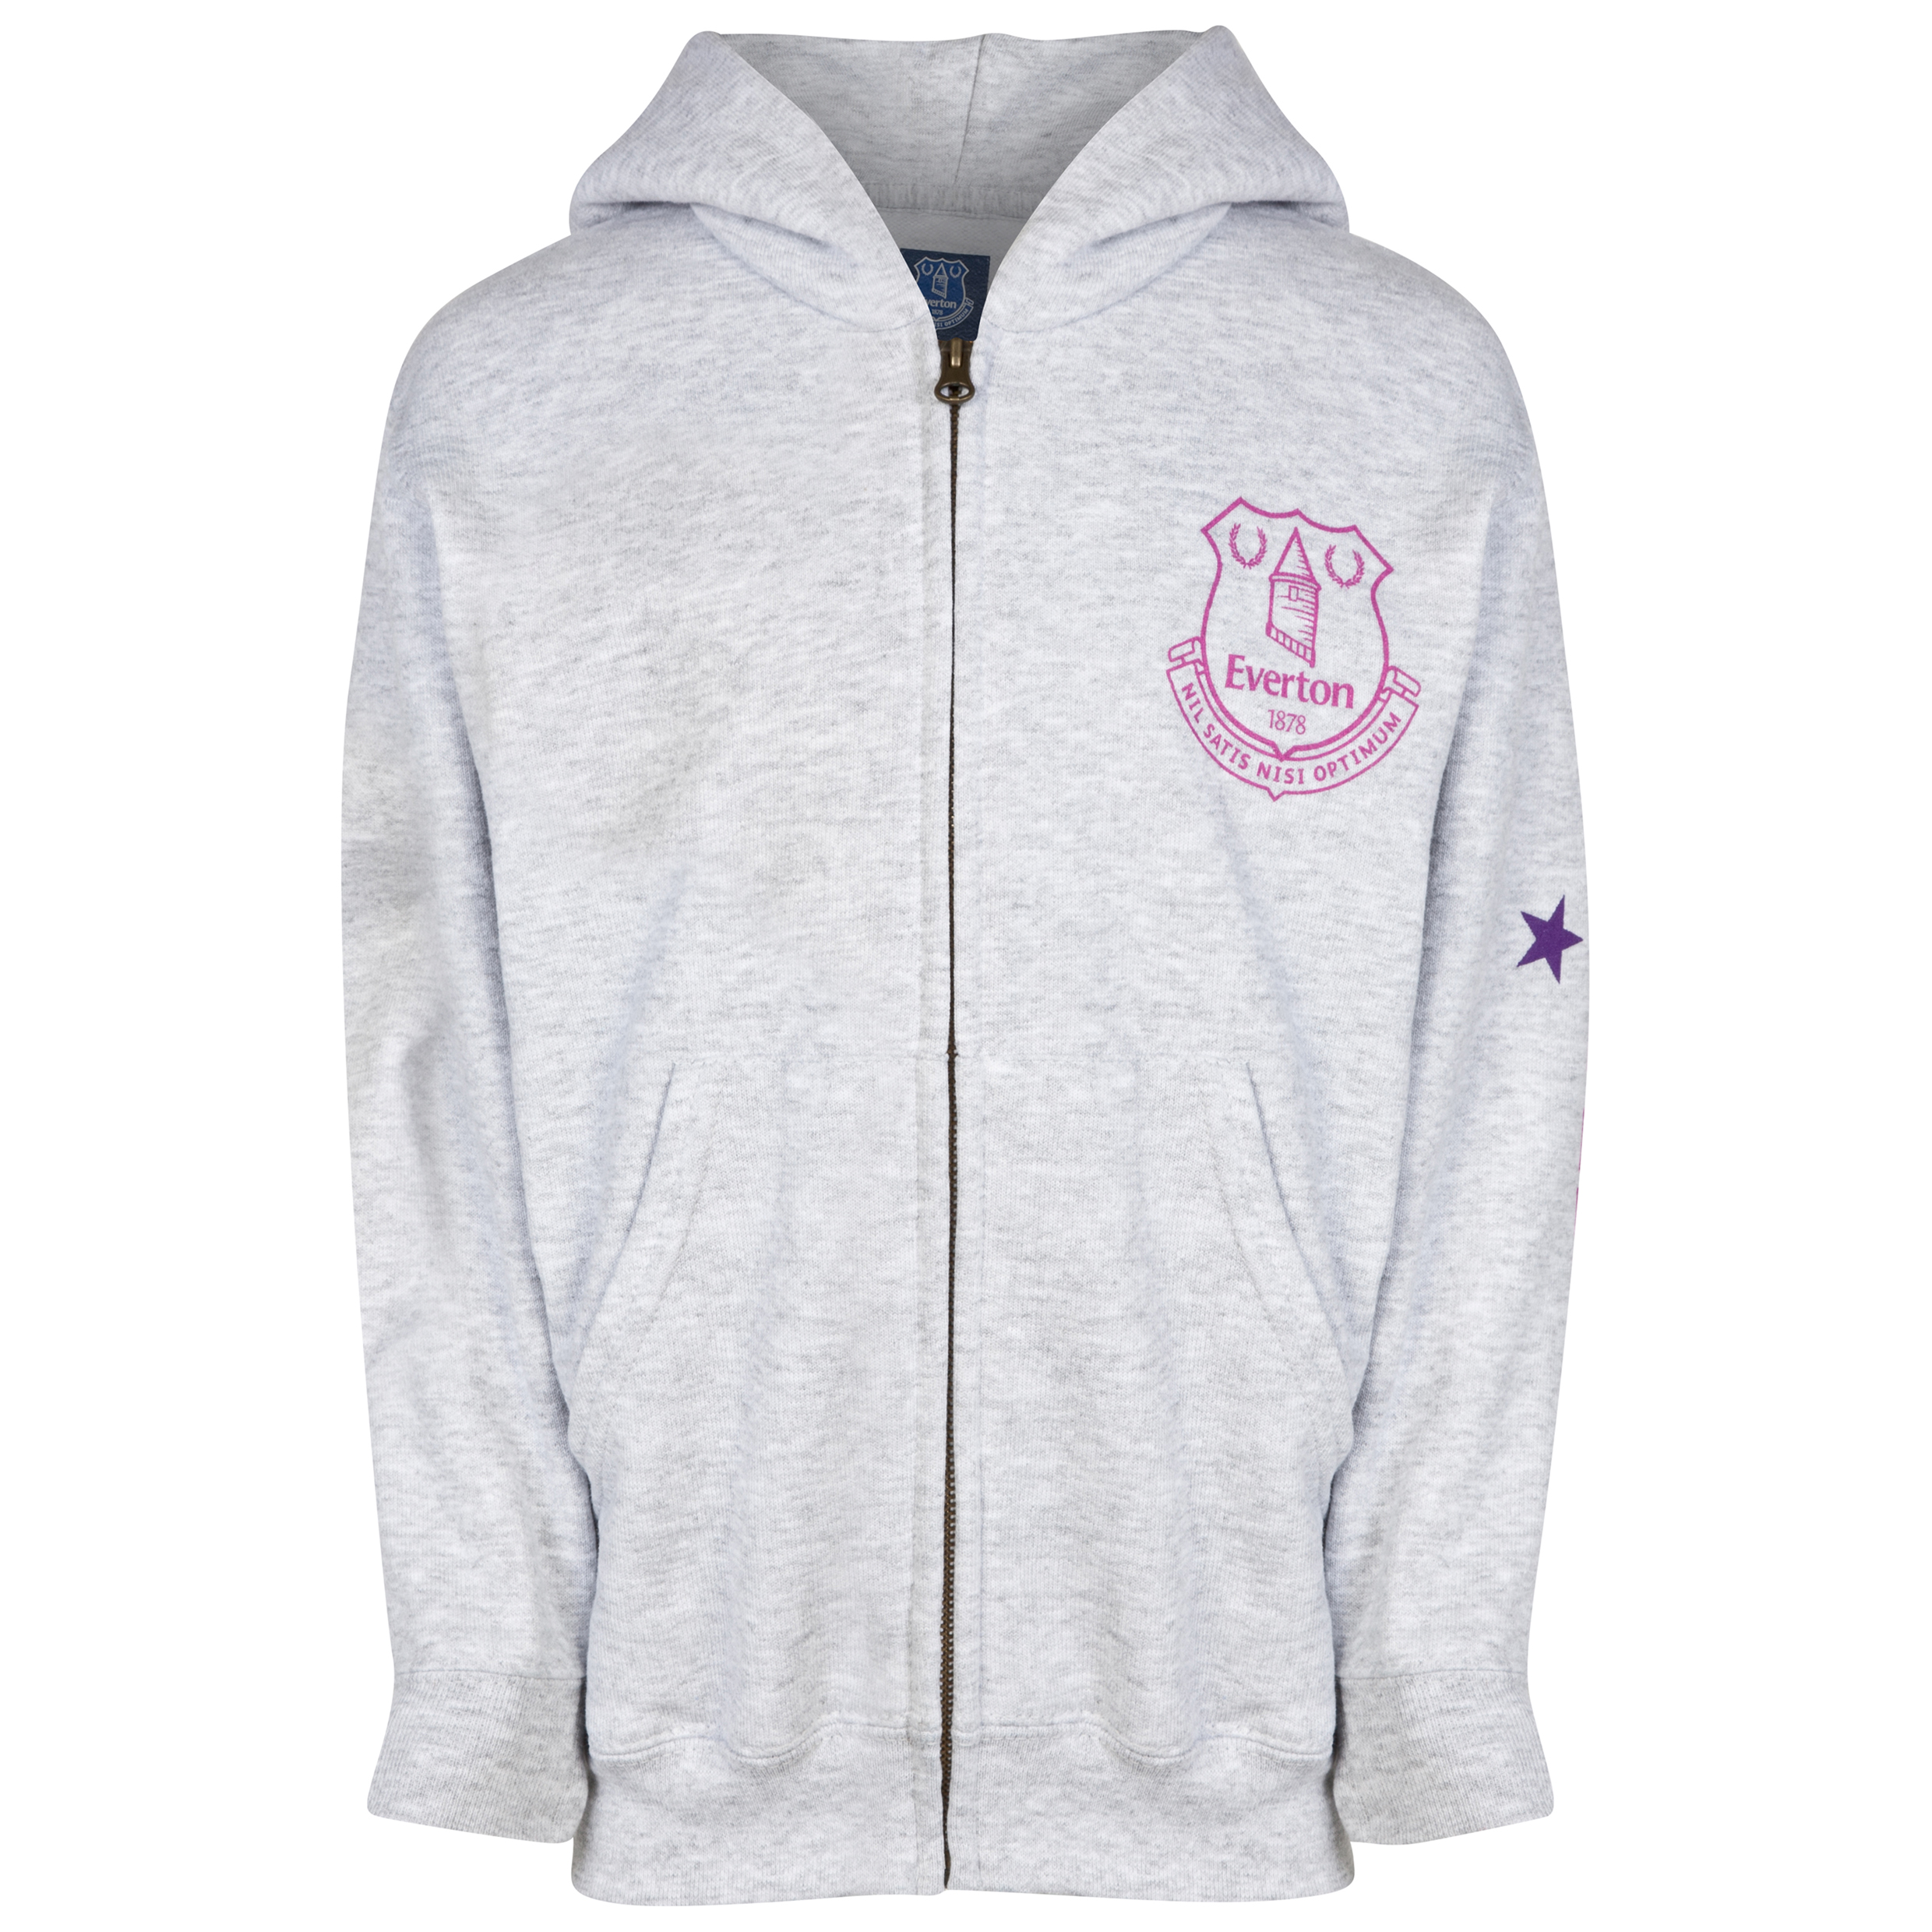 Everton Rhinestone Hoodie- Grey -Girls